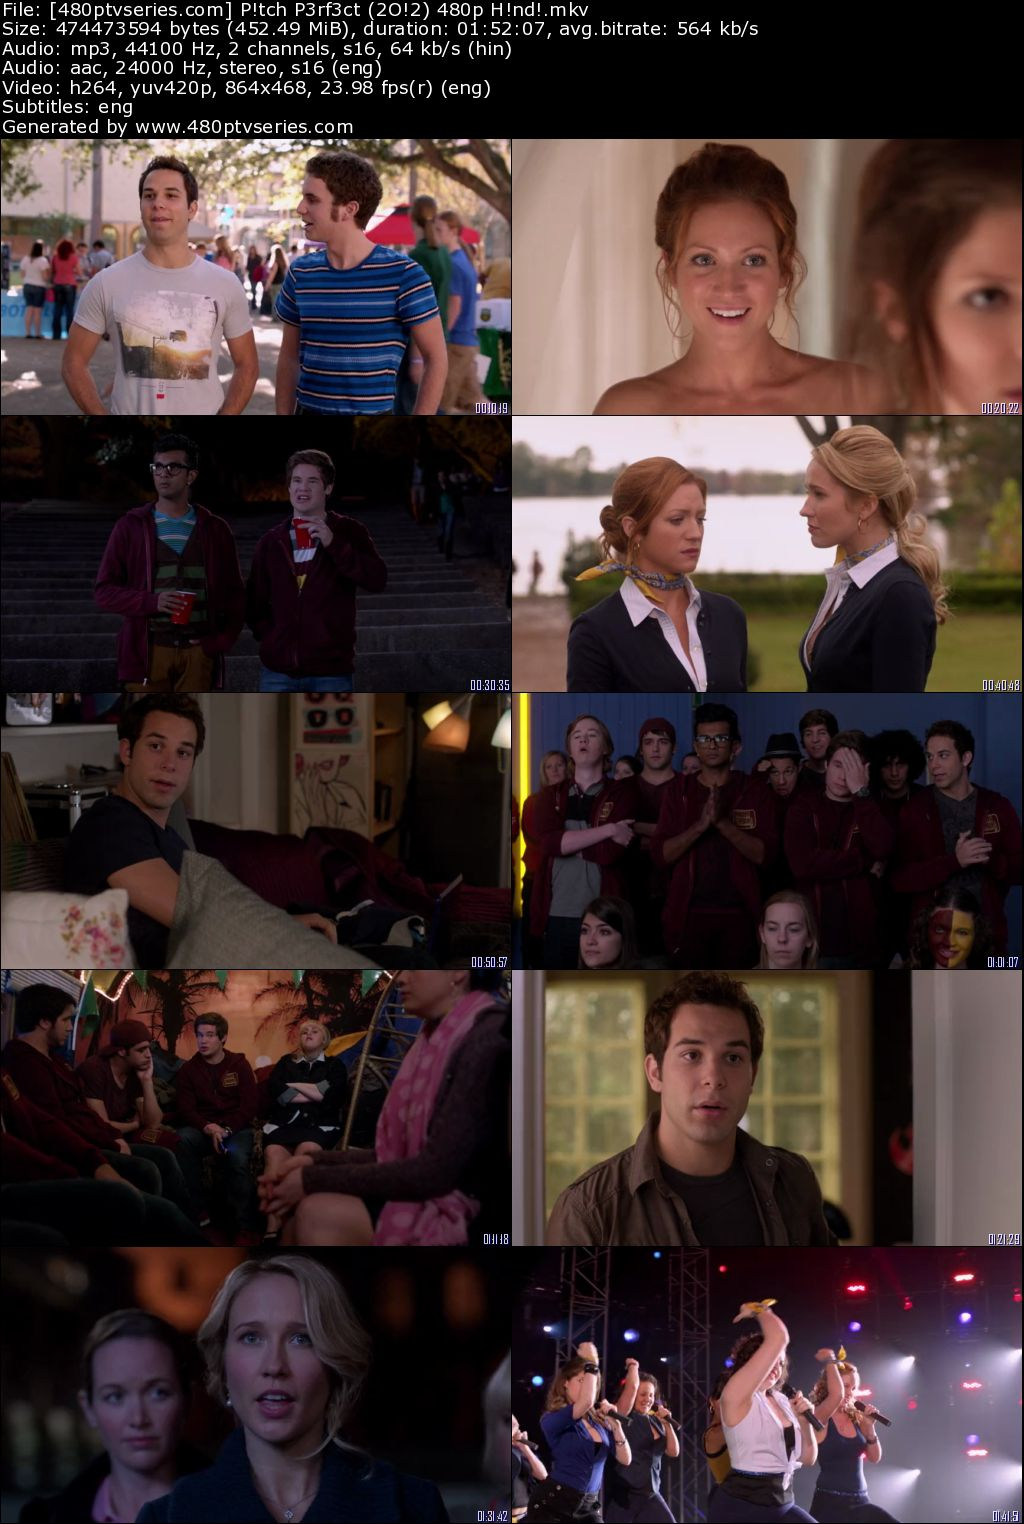 Pitch Perfect Full Movie Online Free German